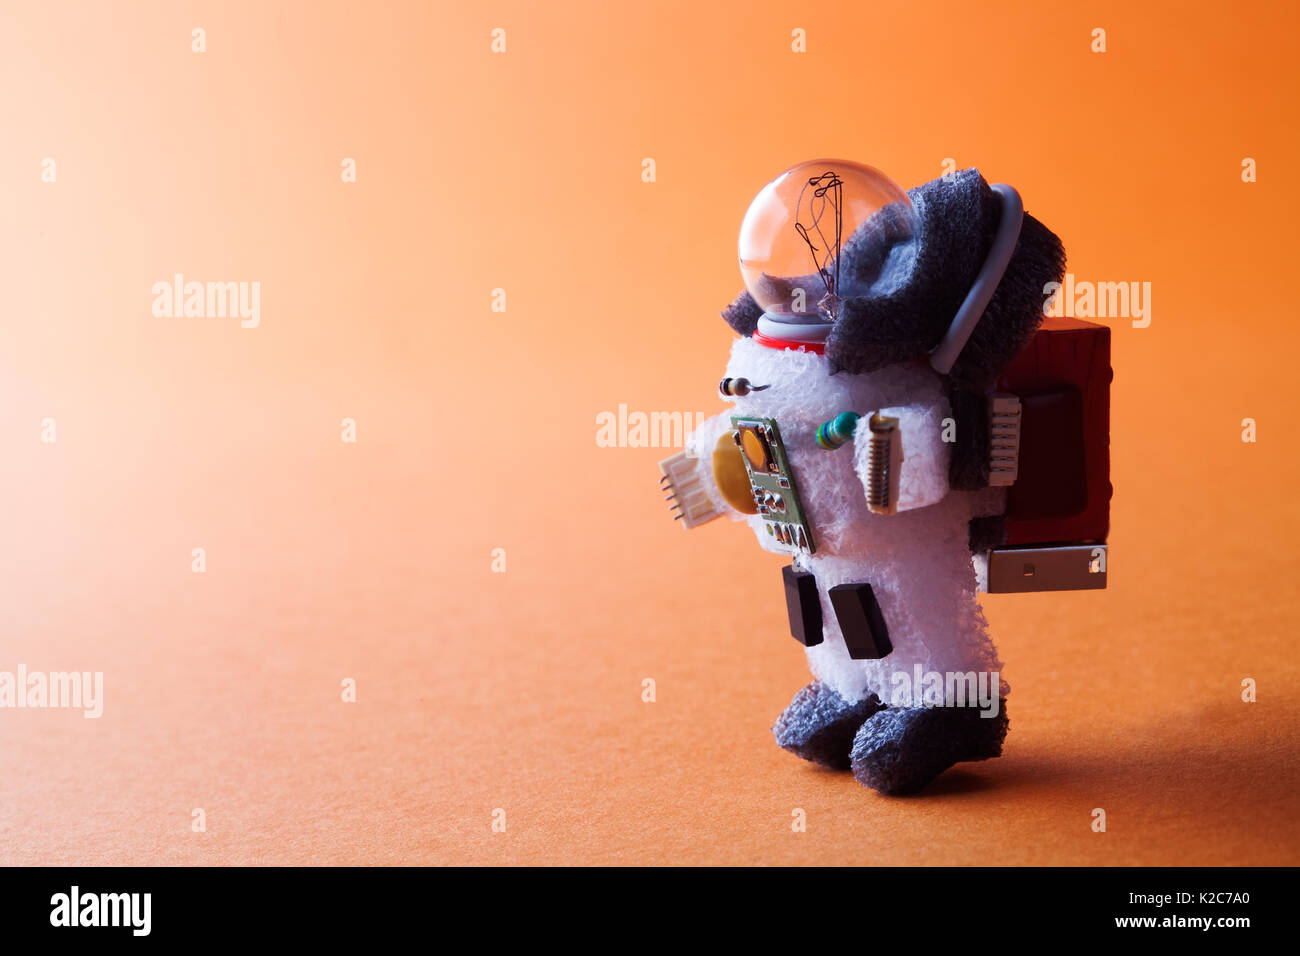 Spaceman light bulb character dressed in spacesuit and